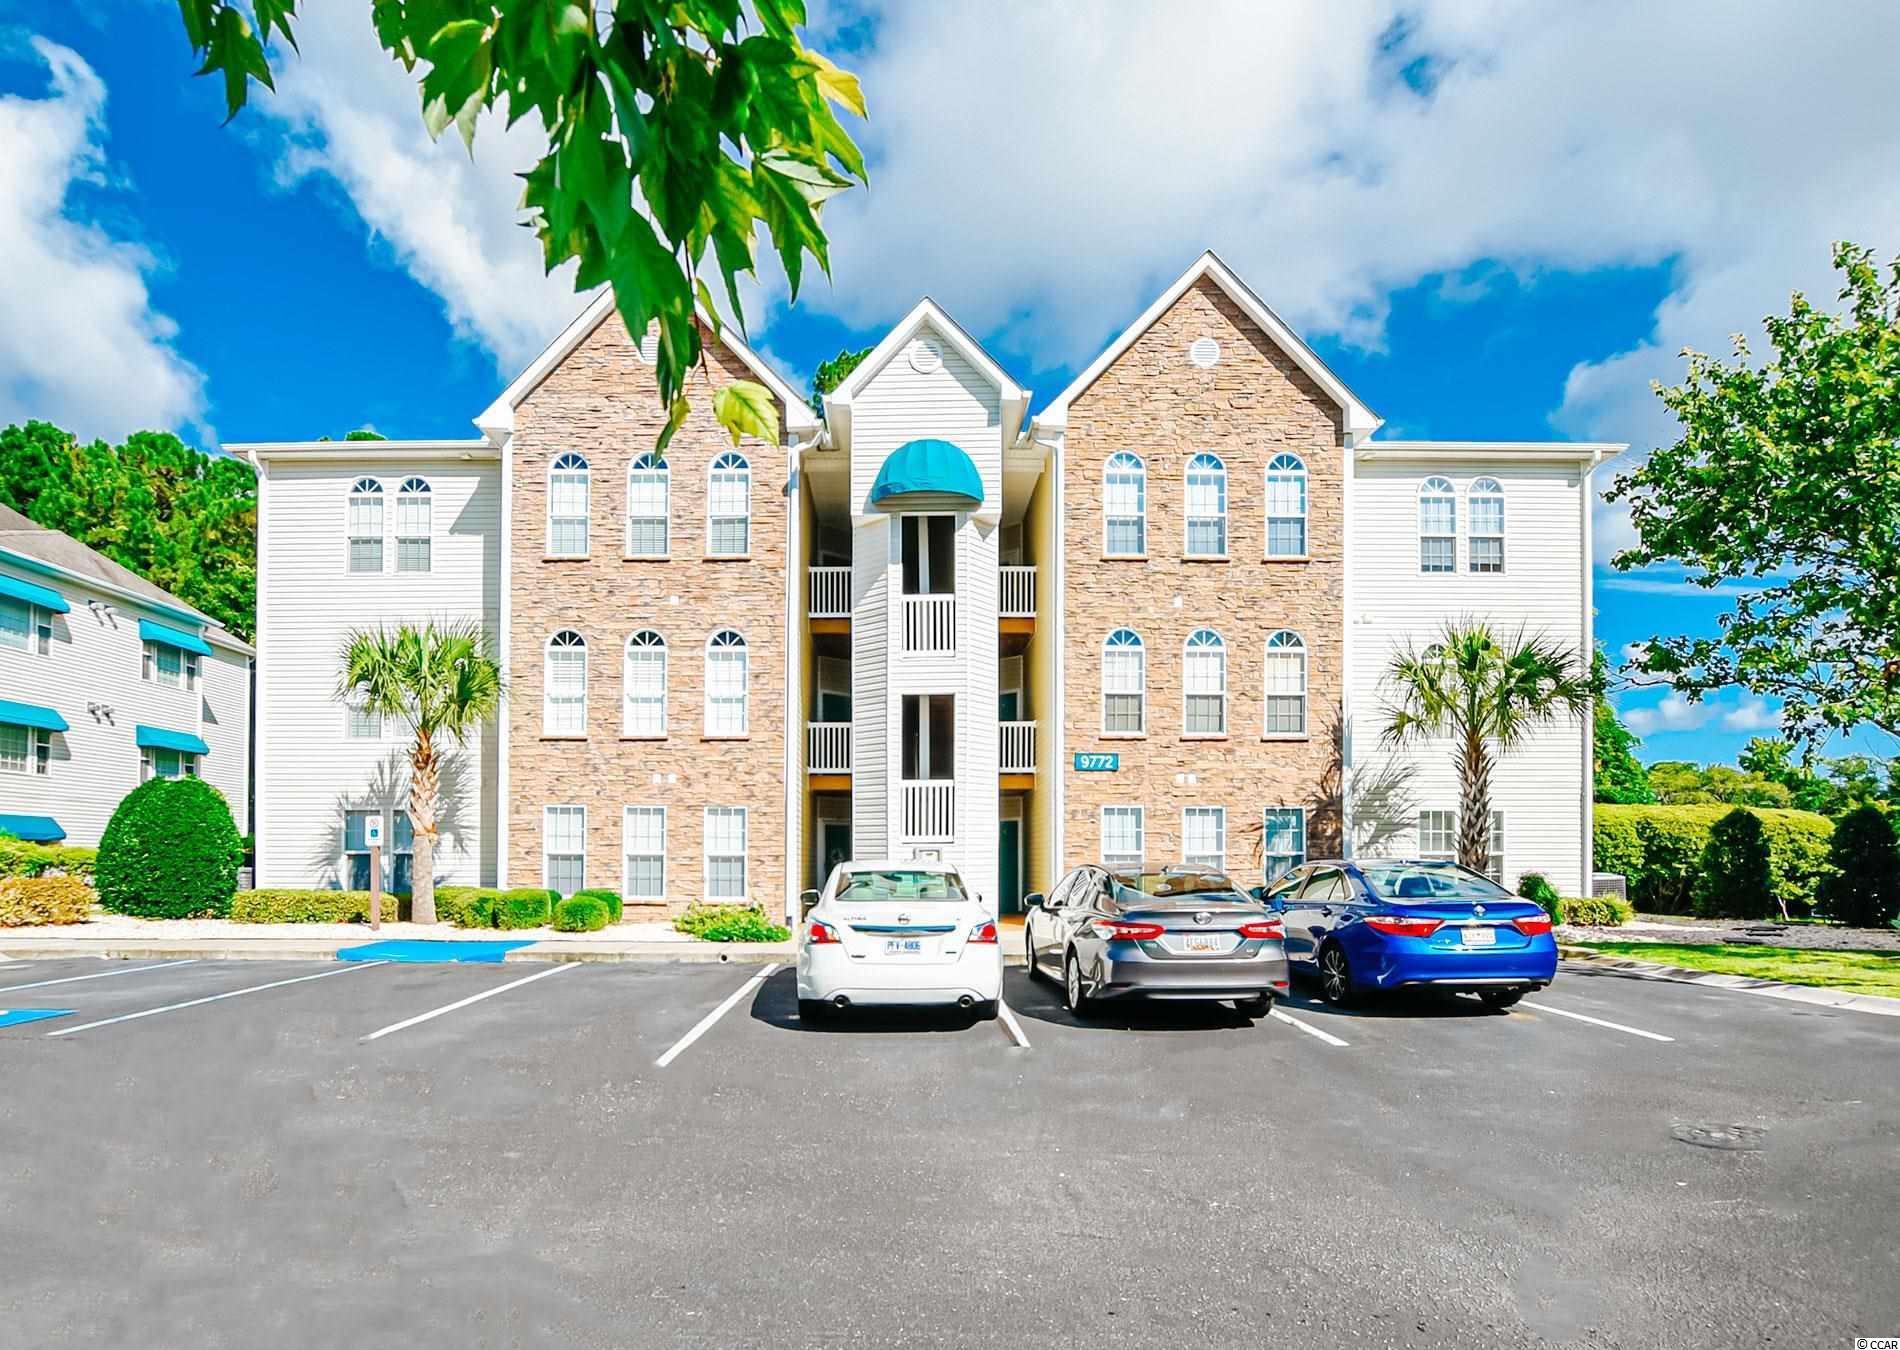 Here's your new fully furnished 2 bedroom 2 bath condo with a Carolina Room in one of the most sought after locations in the Arcadian area in the gated community of Savannah Shores.  Enjoy your fully equipped kitchen with stainless steel appliances and breakfast nook.  You will love these oversized bedrooms and walk-in-closets.  Relax in your spacious living room with fireplace and vaulted ceilings or sip your favorite hot beverage while reading a novel in the bright light of your Carolina Room.  And later go down and enjoy the outdoor amenities including a pool, clubhouse, tennis courts, volley ball, putting green, or playground.  Prime location for a short golf cart ride to the beach, shopping, activities.  Golf cart friendly development with gas or electric allowed for a small permit fee. And there are Electric Charging stations available at locations in the development